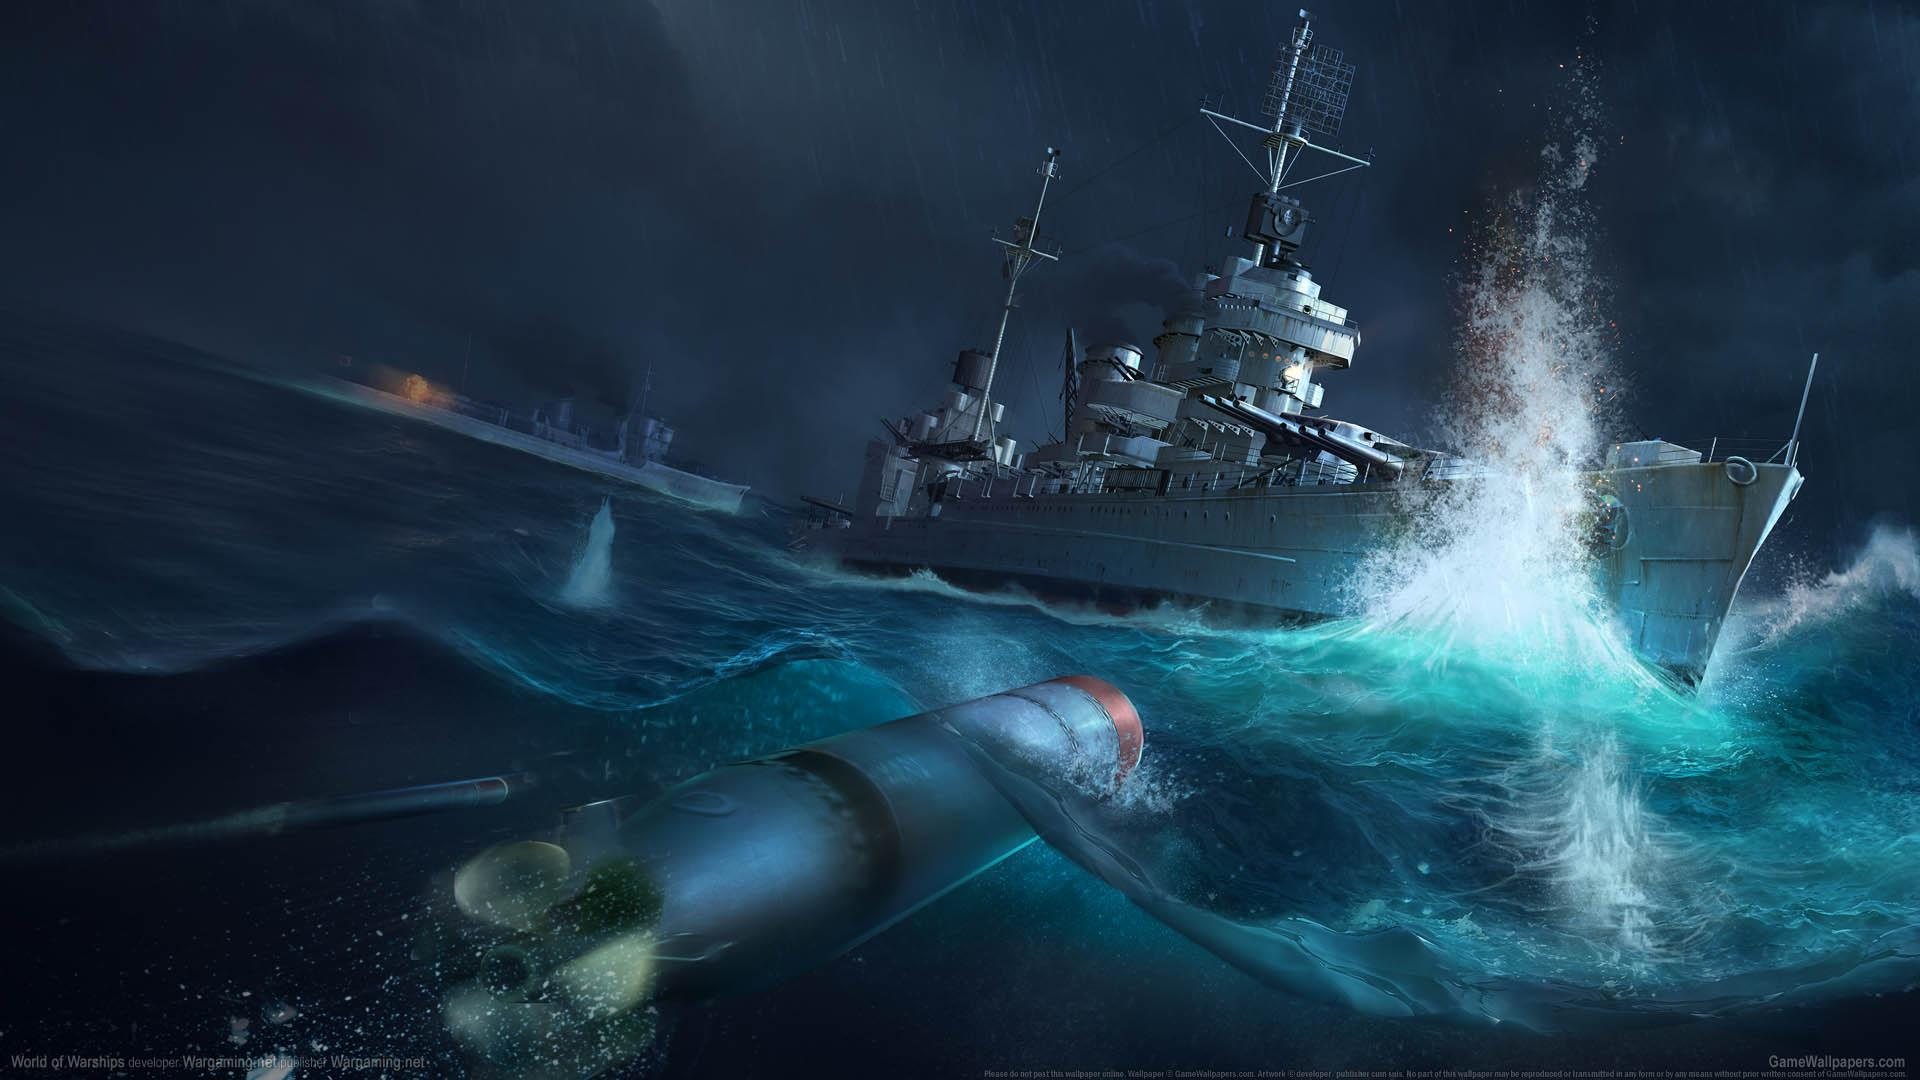 Download World Of Warships Wallpaper Hd Backgrounds Download